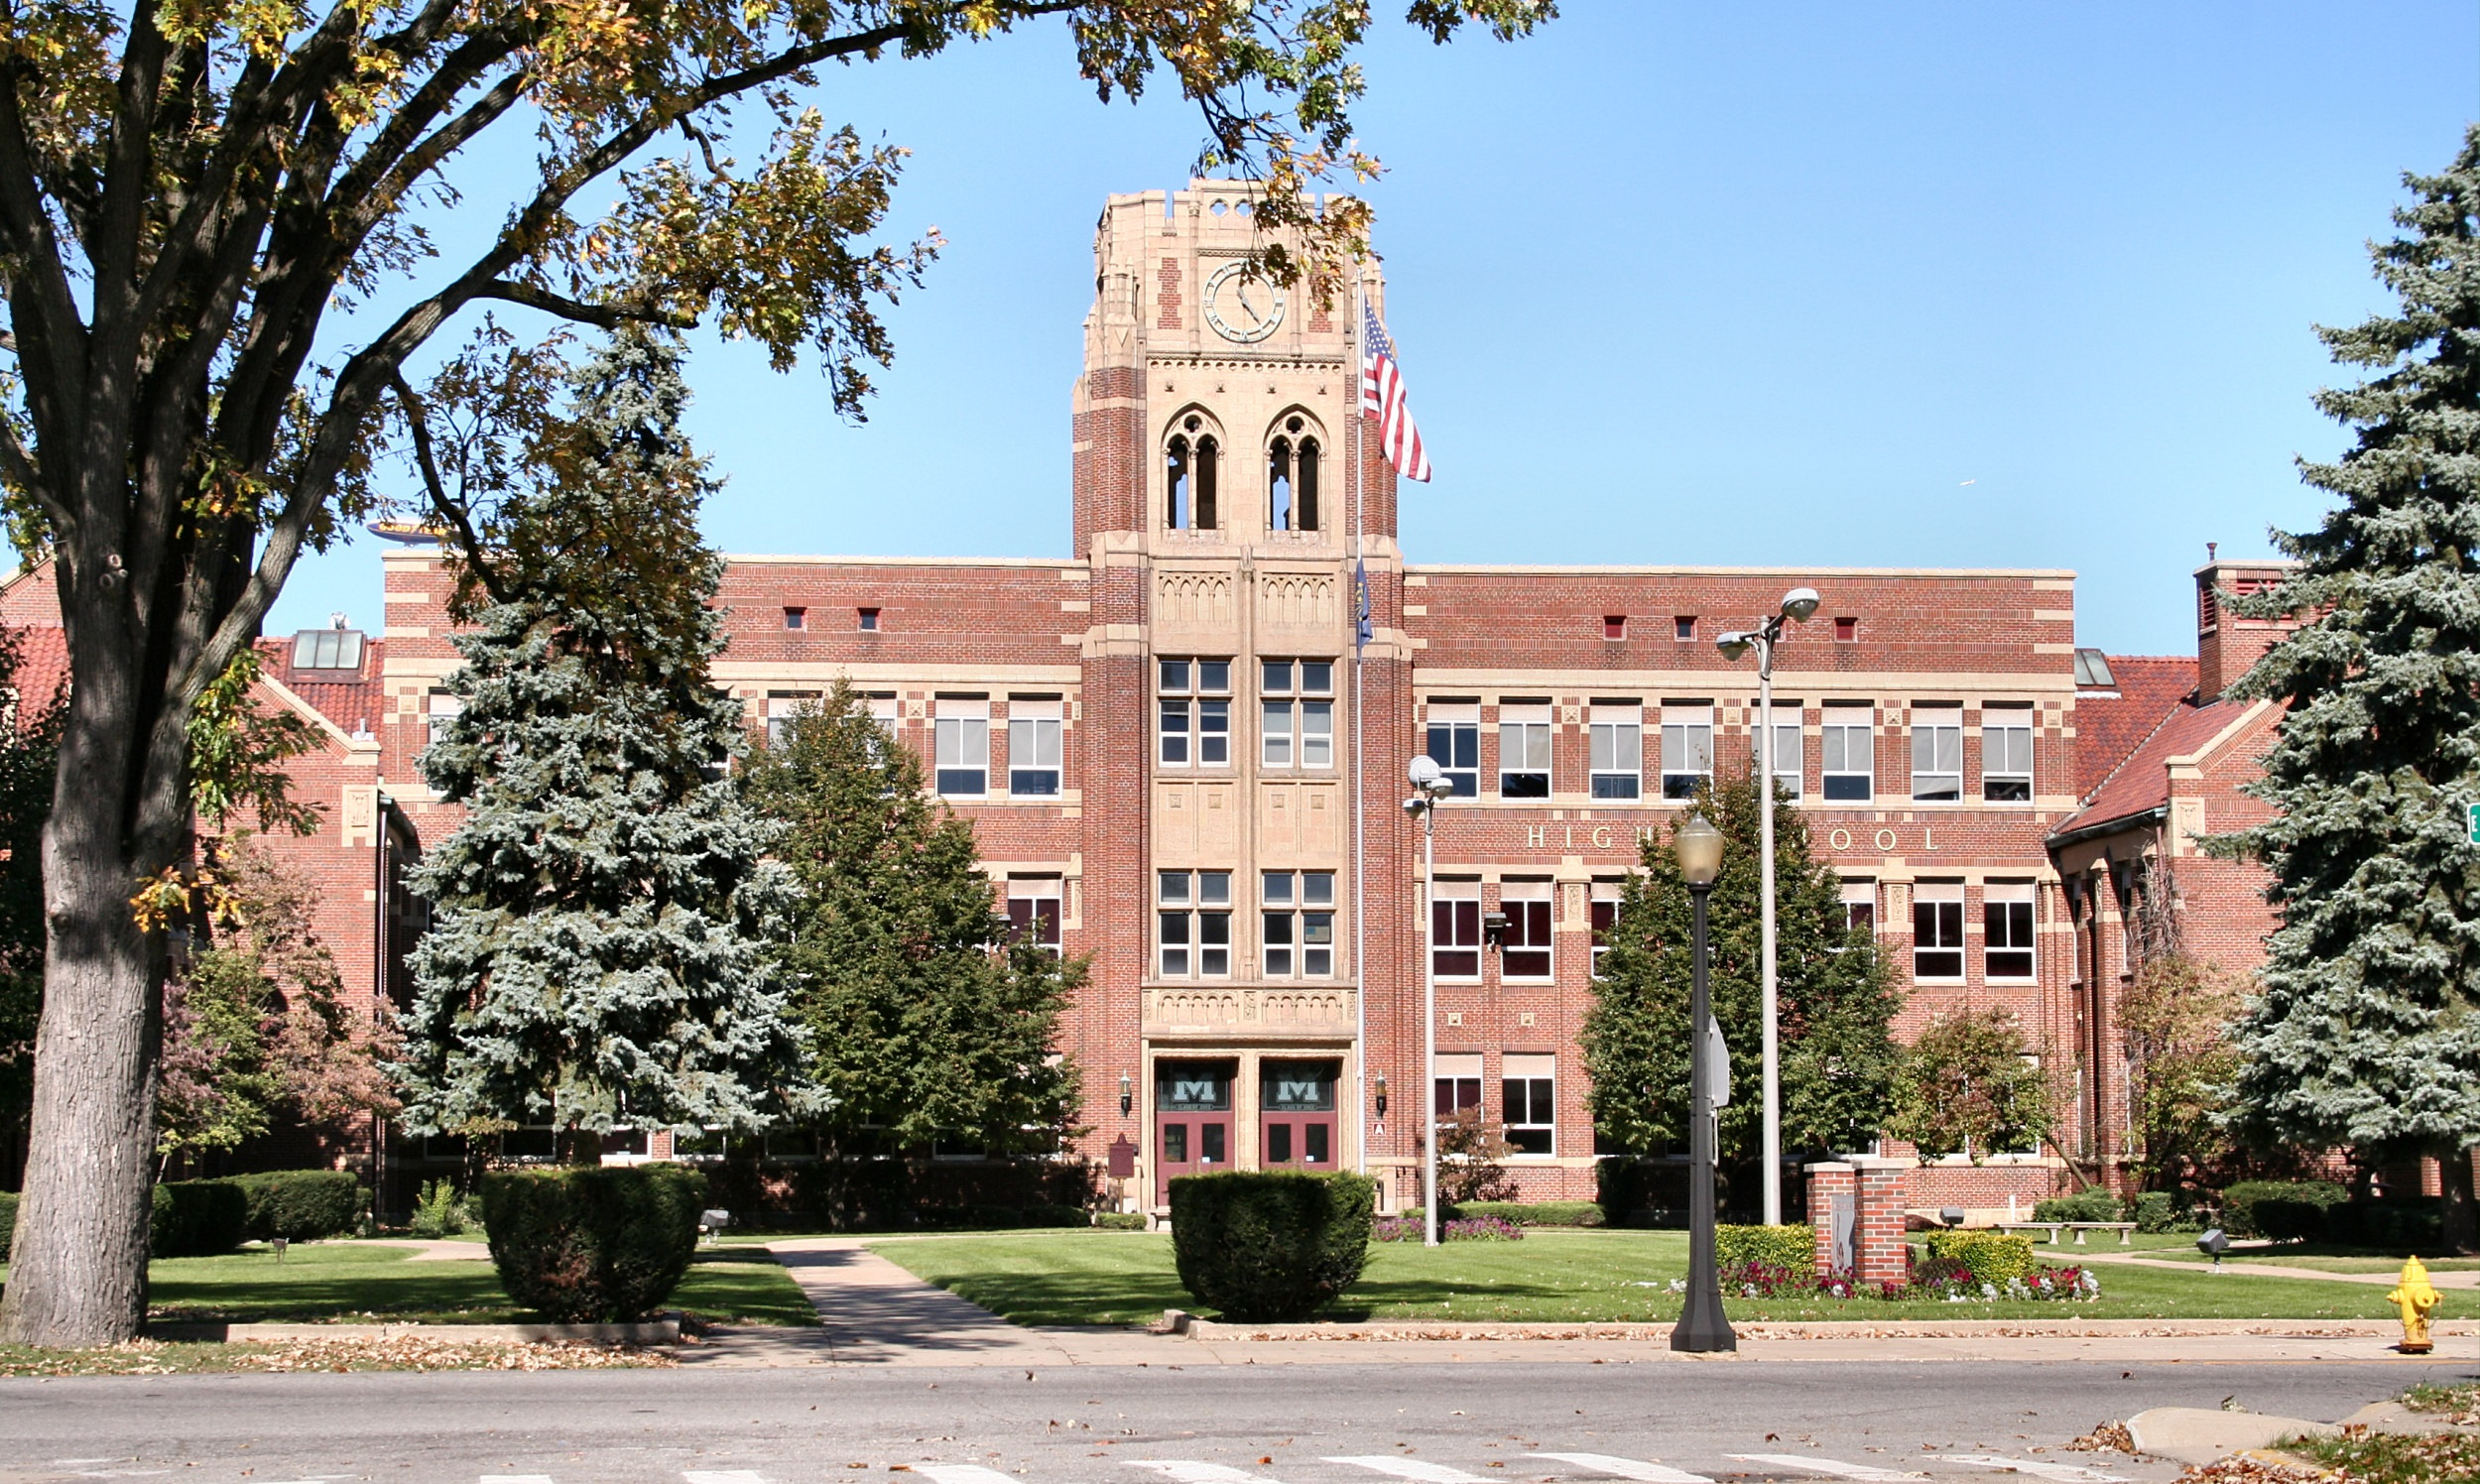 Mishawaka High School. Public Domain Photograph.